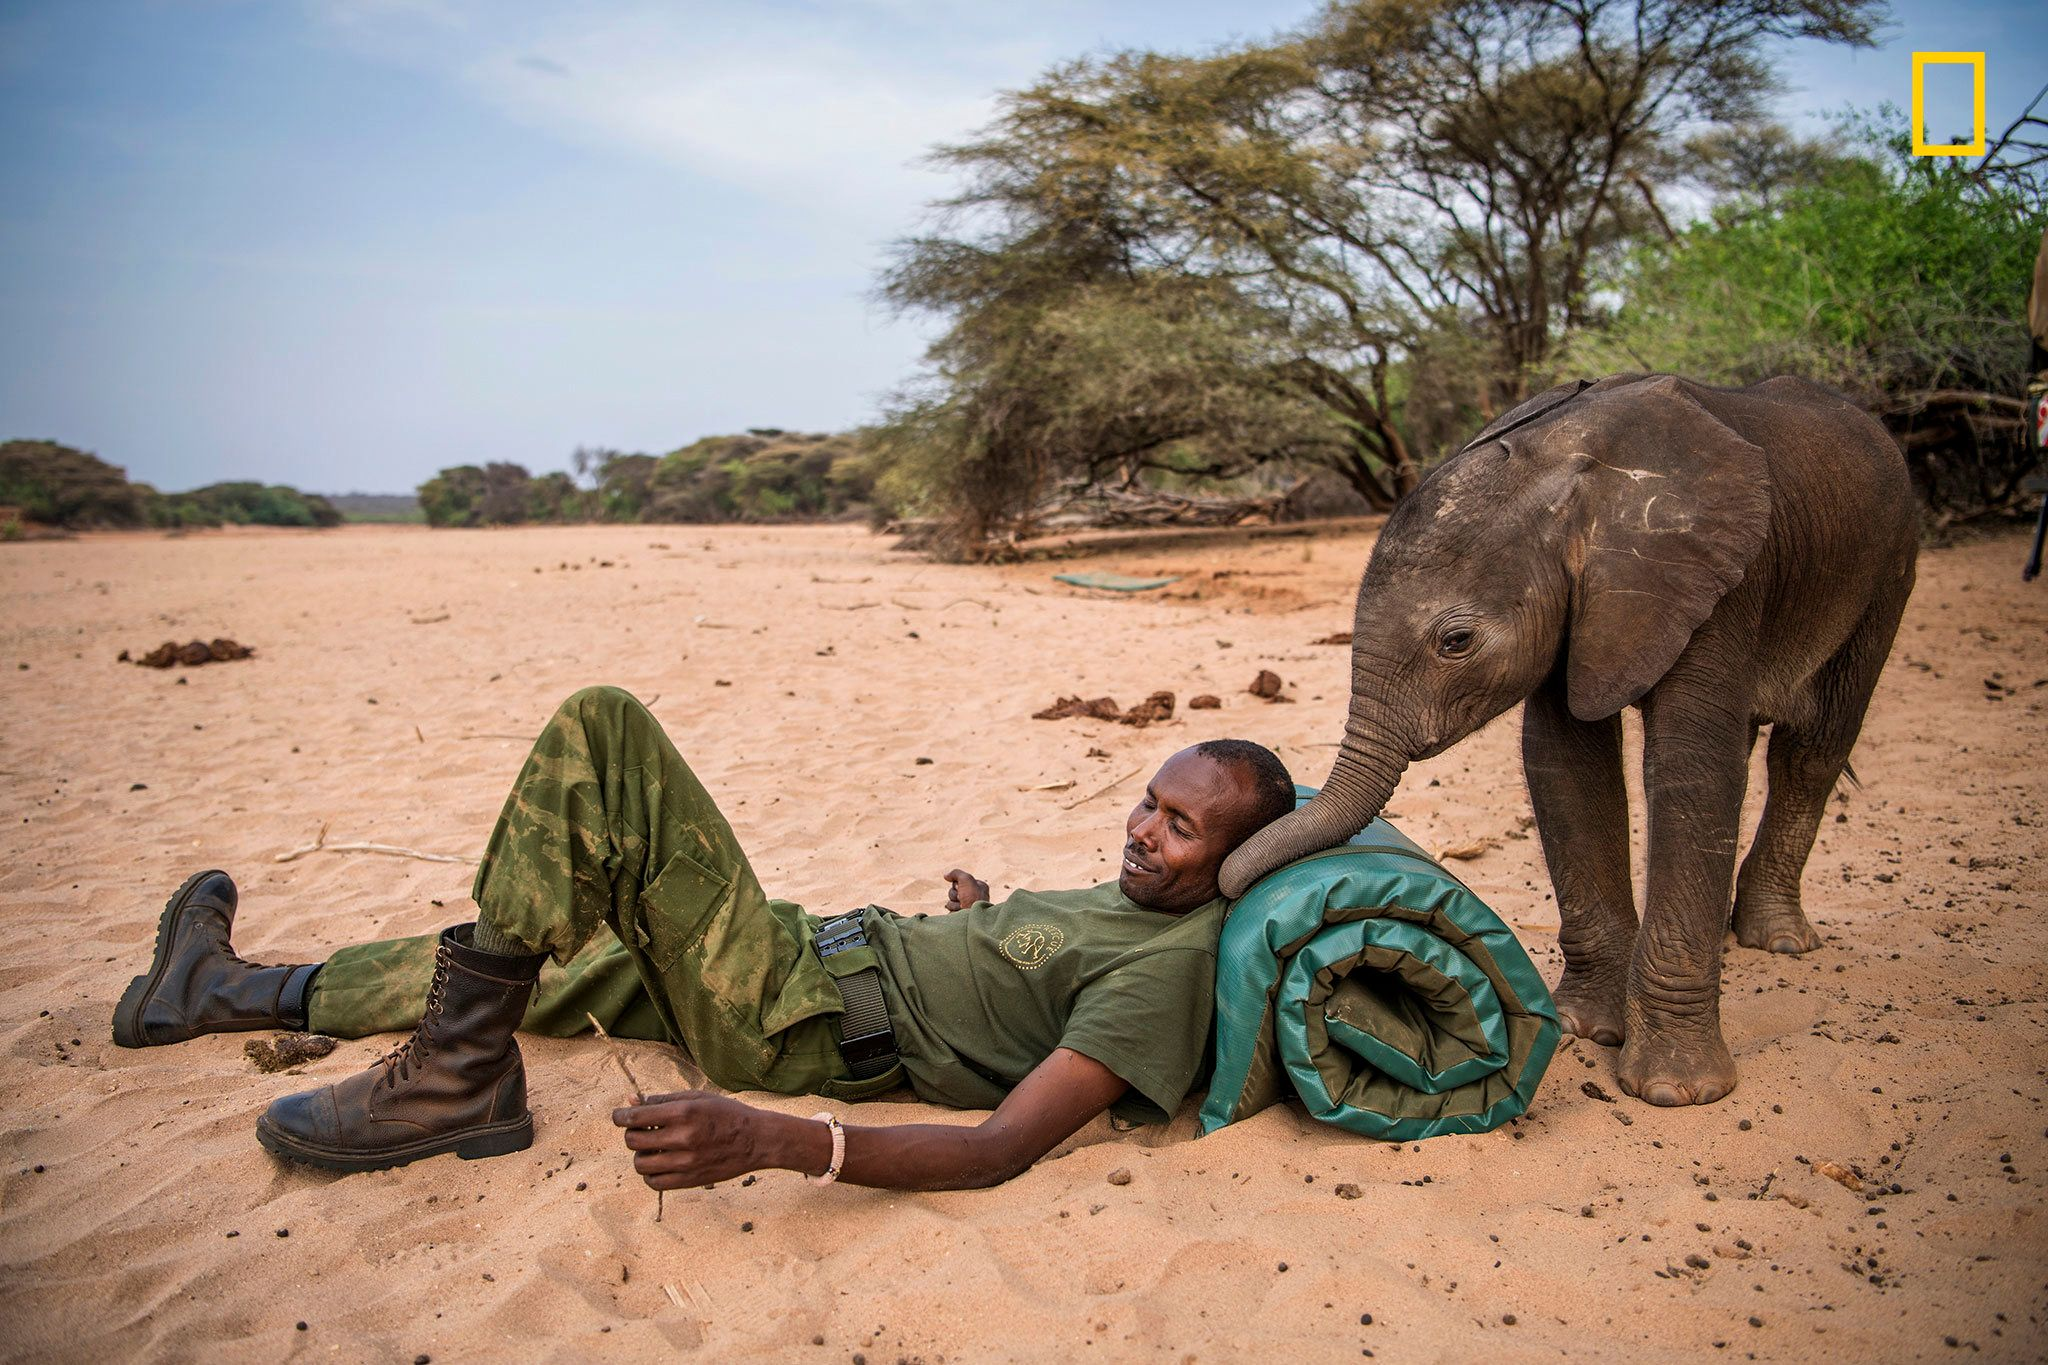 Locals have beenworking to save endangered baby elephants in northern